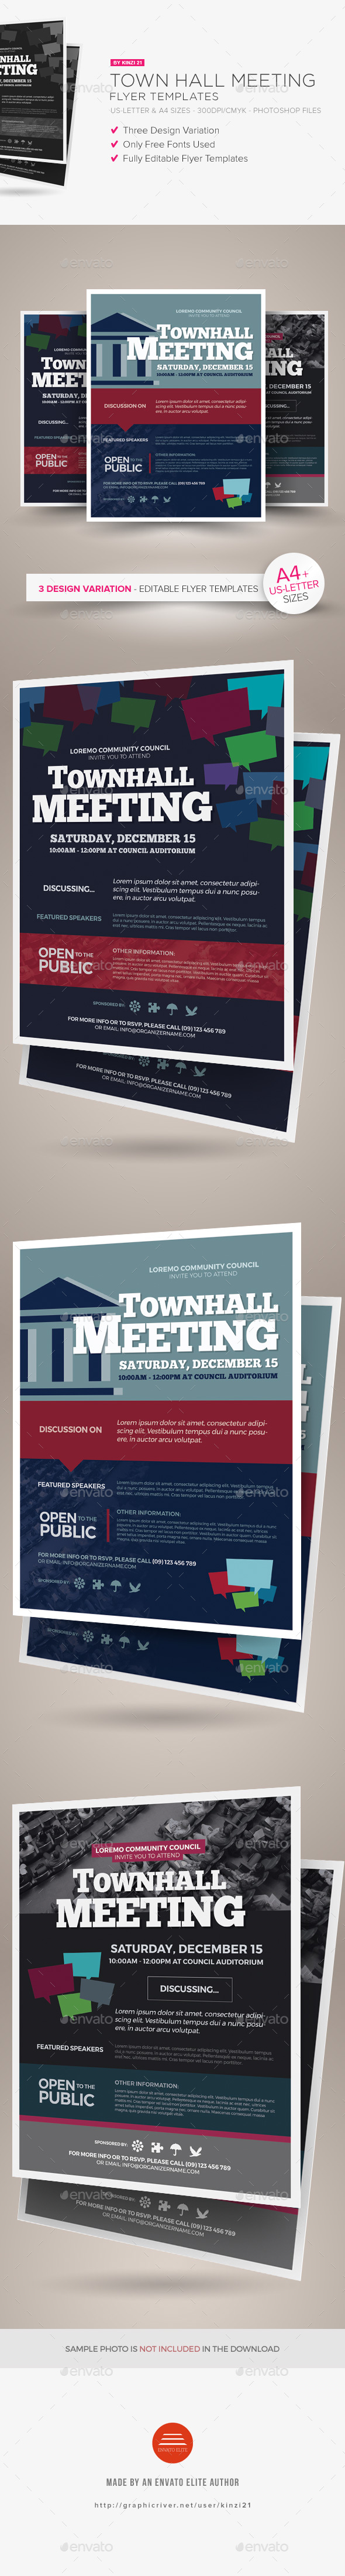 Town Hall Meeting Flyer Templates - Corporate Flyers